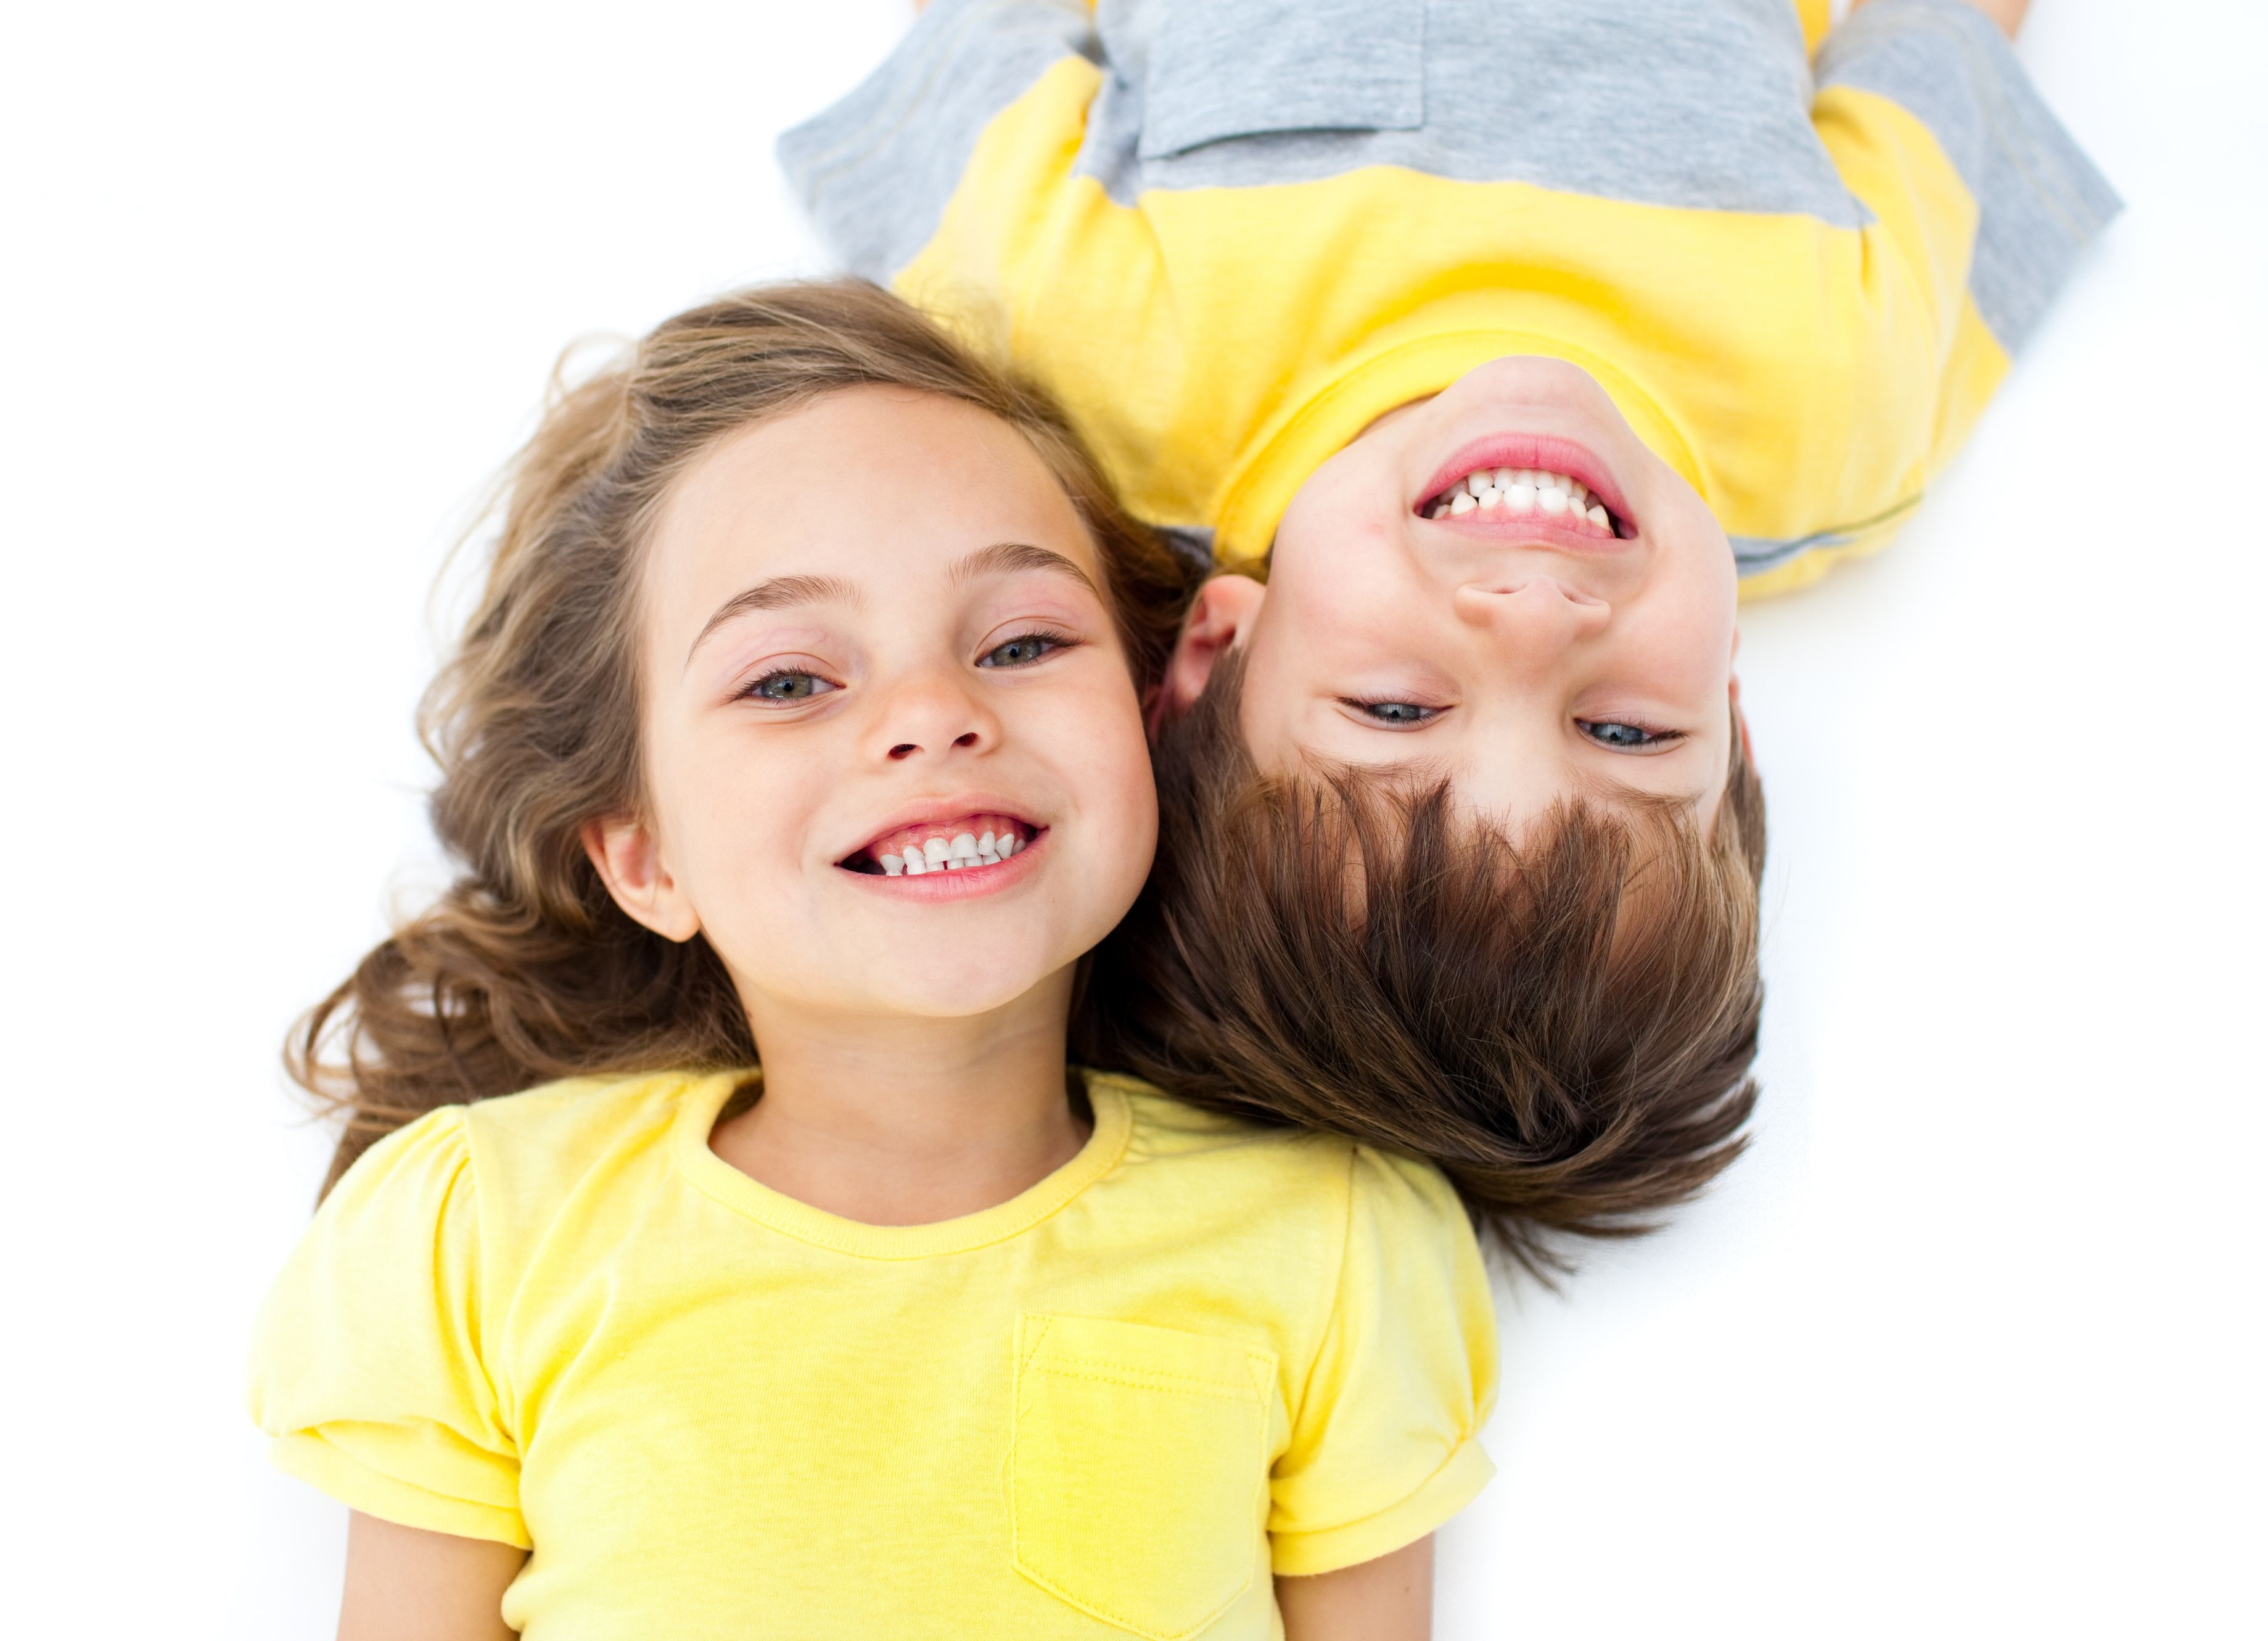 Greensboro Pediatric Dentist